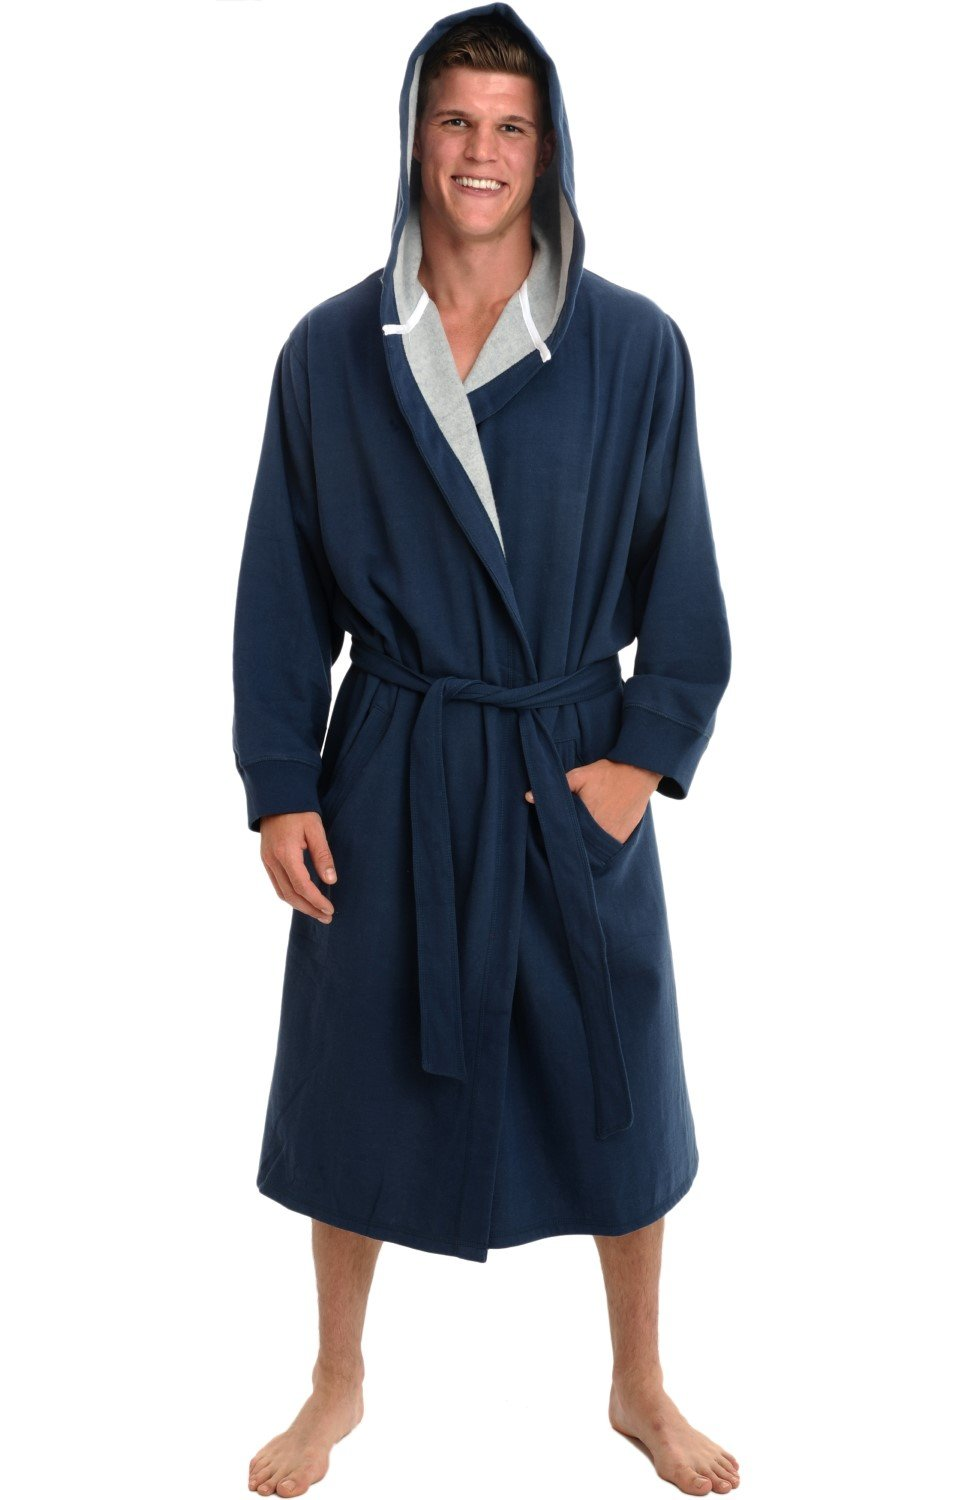 Alexander Del Rossa Mens Cotton Robe, Sweatshirt Style Hooded Bathrobe, Large XL Midnight Blue (A0311MBLXL)